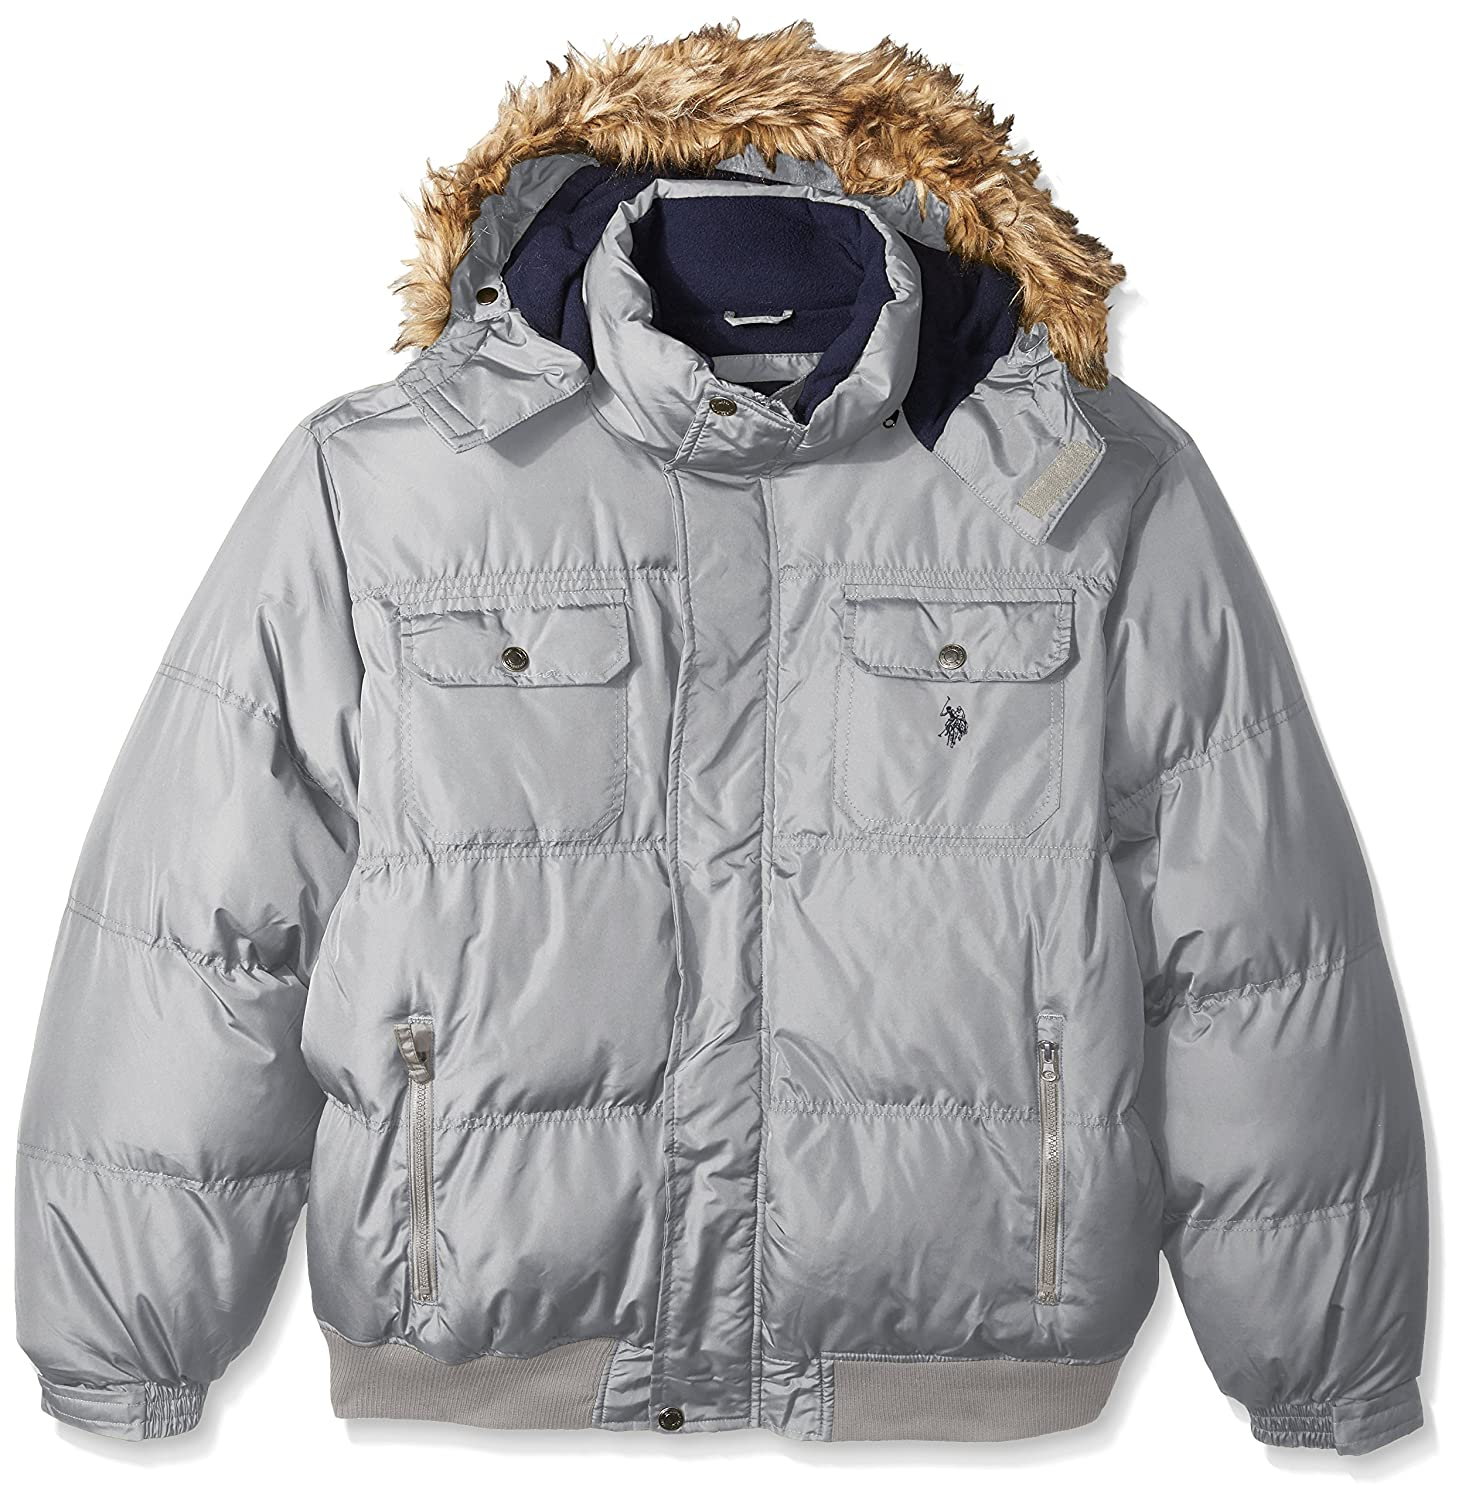 Limestone 2X Big U.S. Polo ASSN. Mens Big and Tall Short Snorkel Jacket with Faux Fur Trimmed Hood Down Alternative Outerwear Coat